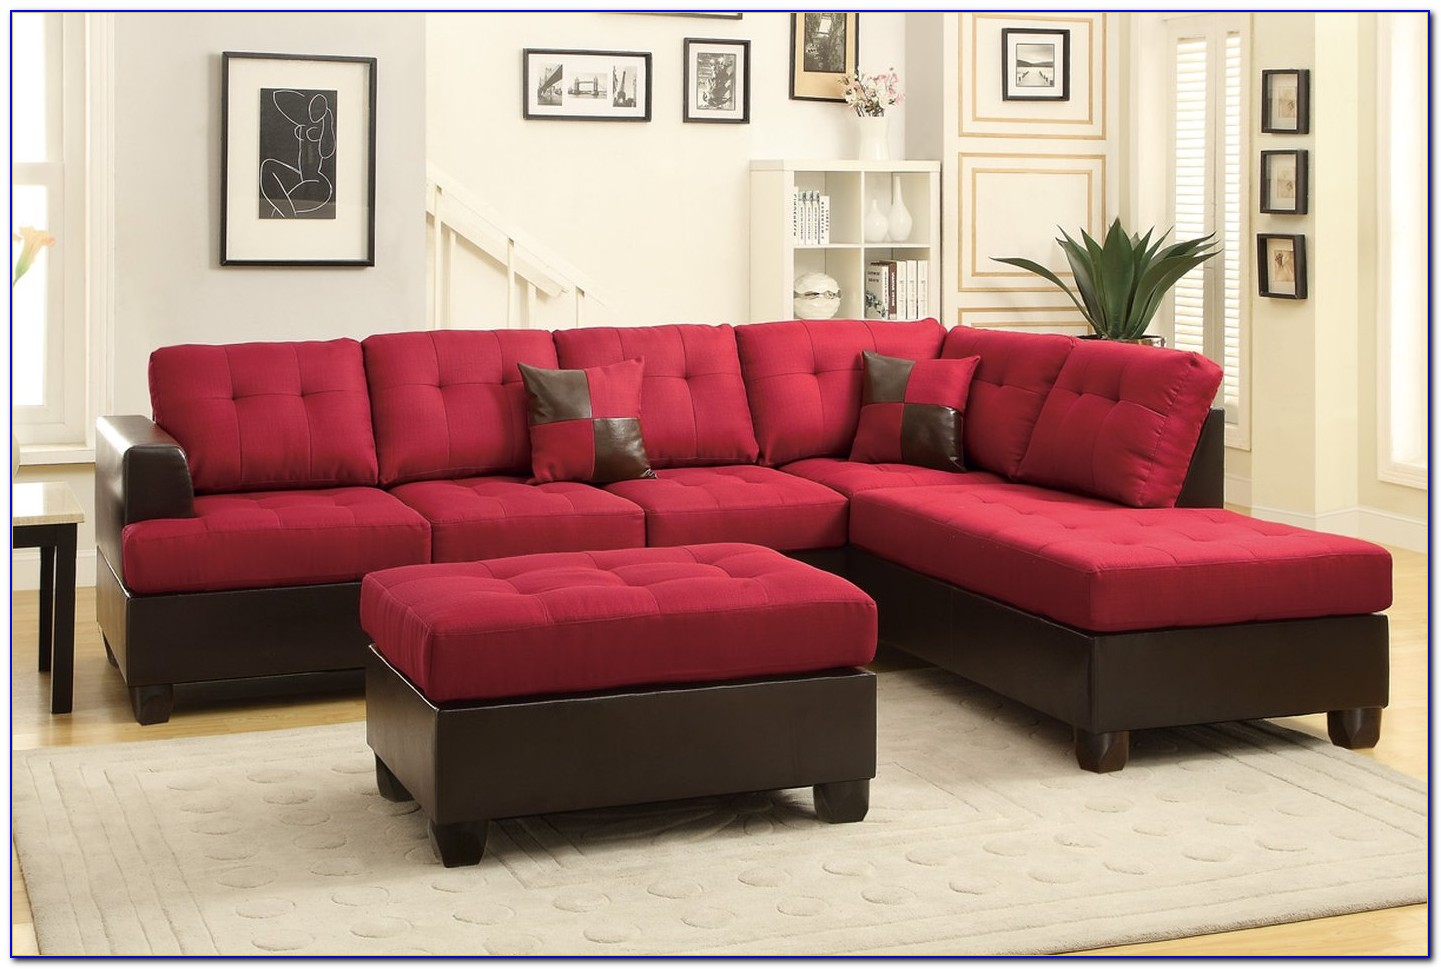 Sectional Sofa With Storage Ottoman